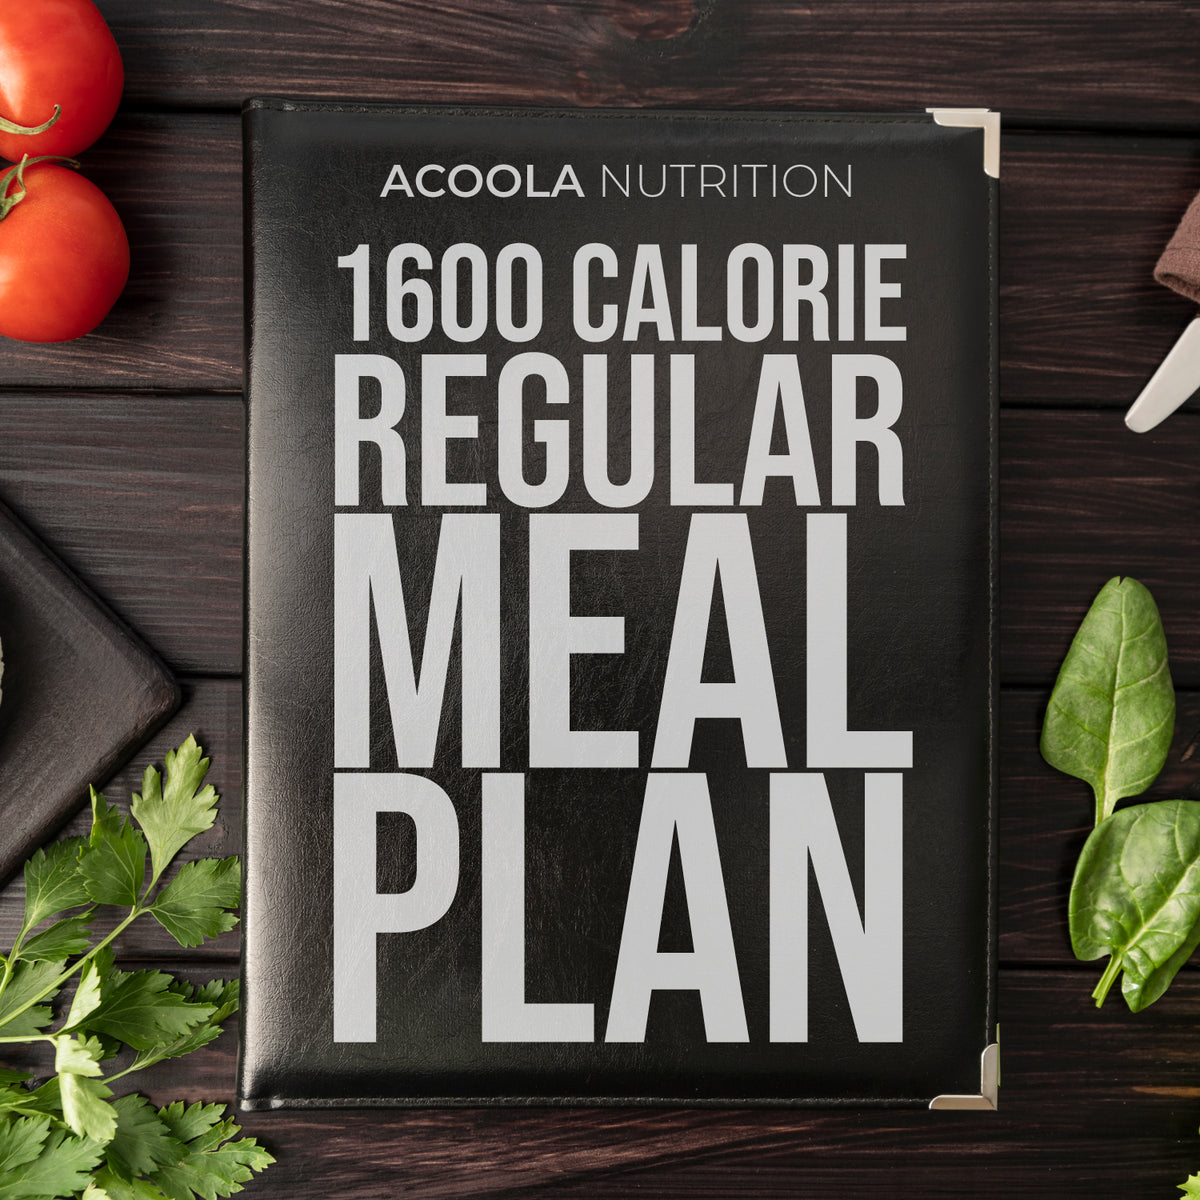 2 WEEKS MEAL PLAN (e-book)